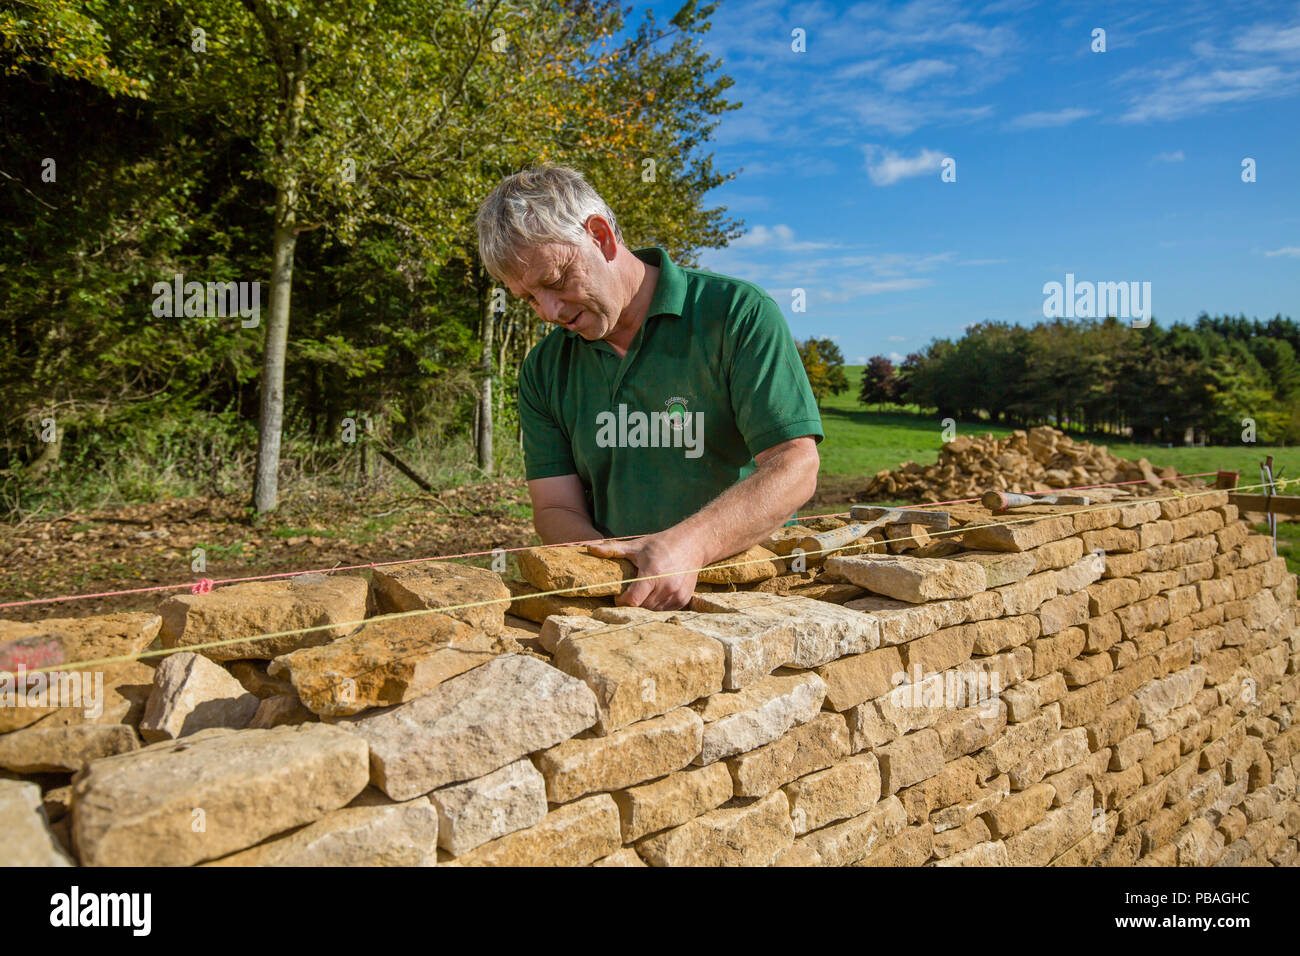 Traditional dry stone waller working with Cotswolds limestone building a wall, Guiting Power, Gloucestershire, UK. October 2015. - Stock Image